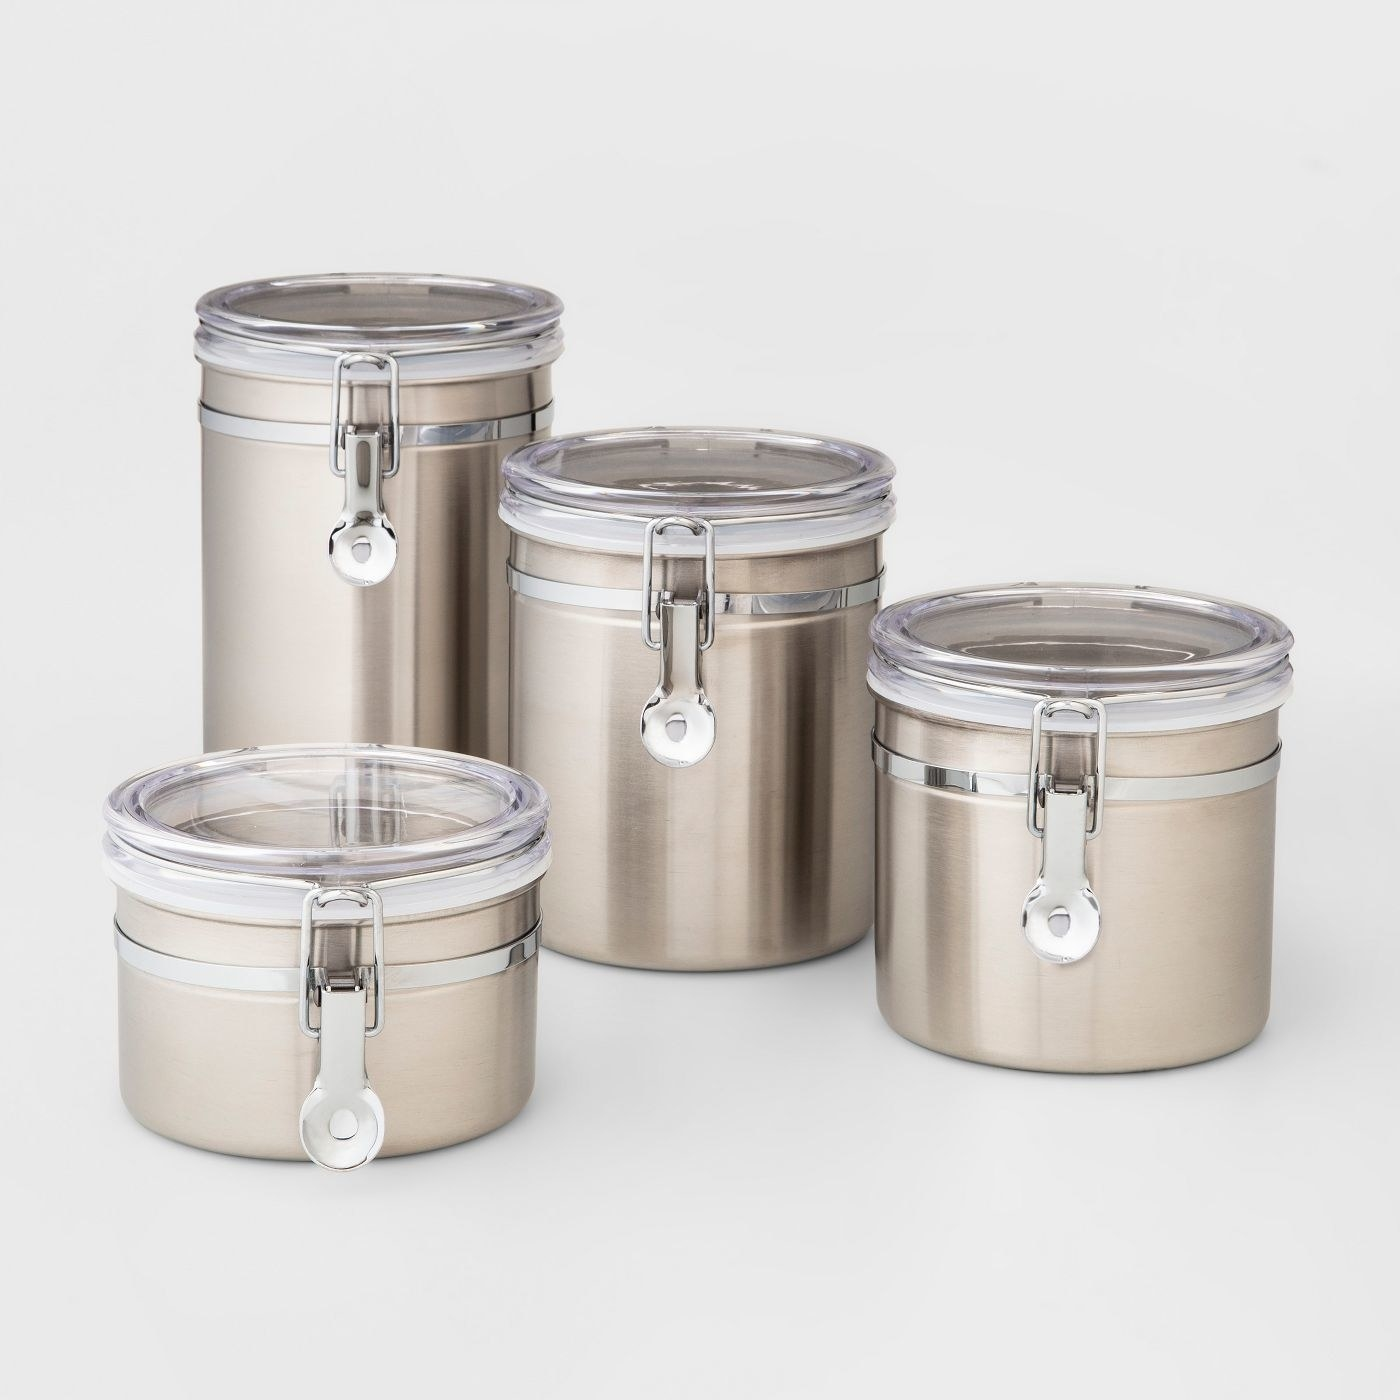 The canister set